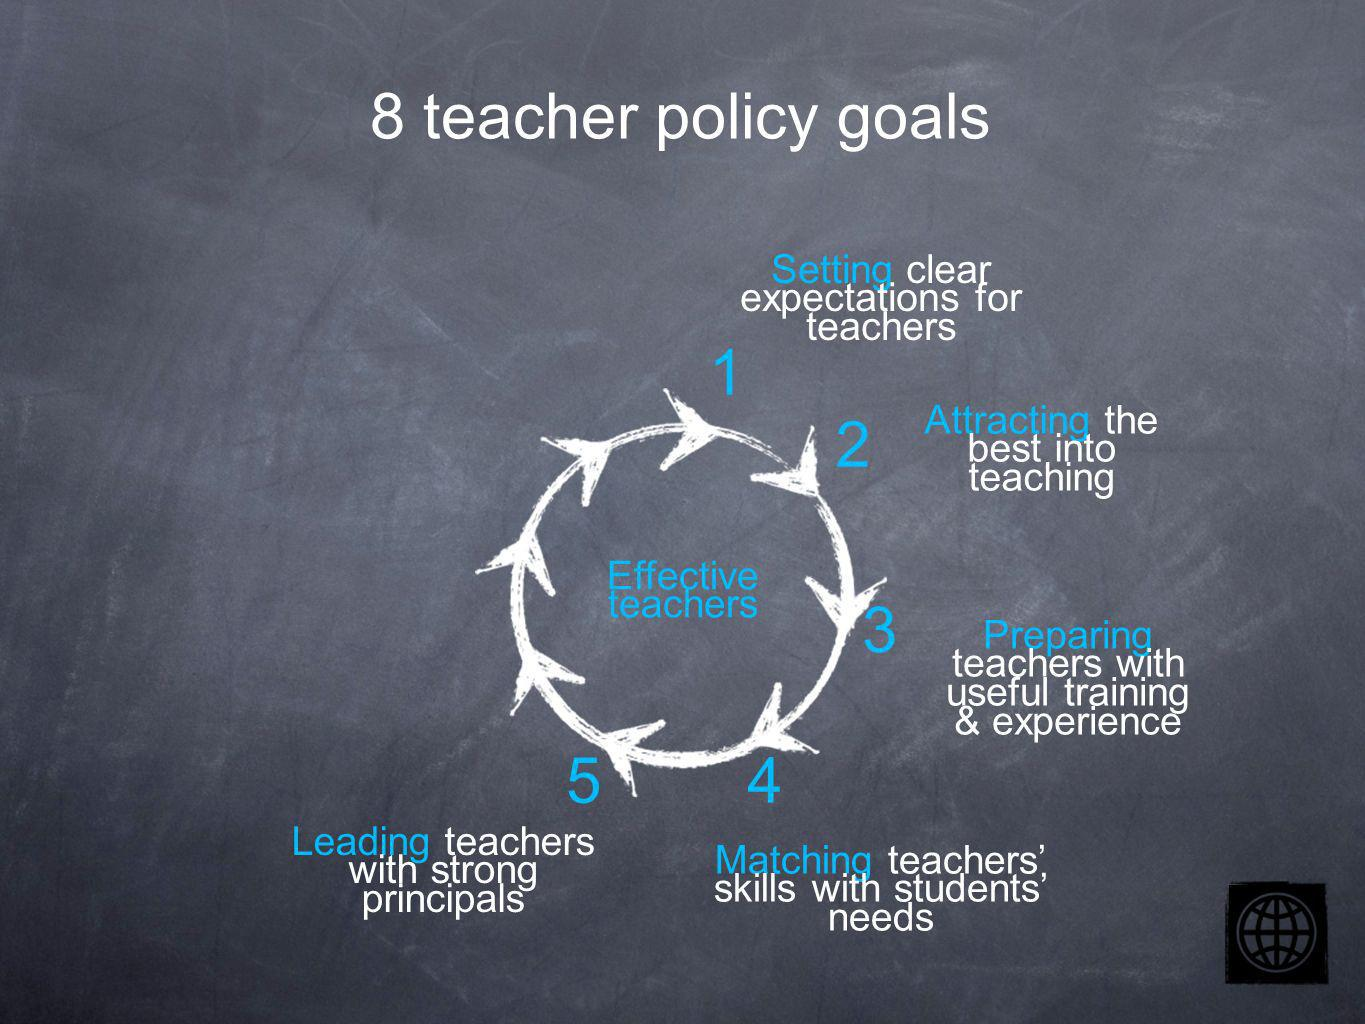 Setting clear expectations for teachers Attracting the best into teaching Preparing teachers with useful training & experience Effective teachers Matching teachers skills with students needs Leading teachers with strong principals 2 3 4 1 5 8 teacher policy goals